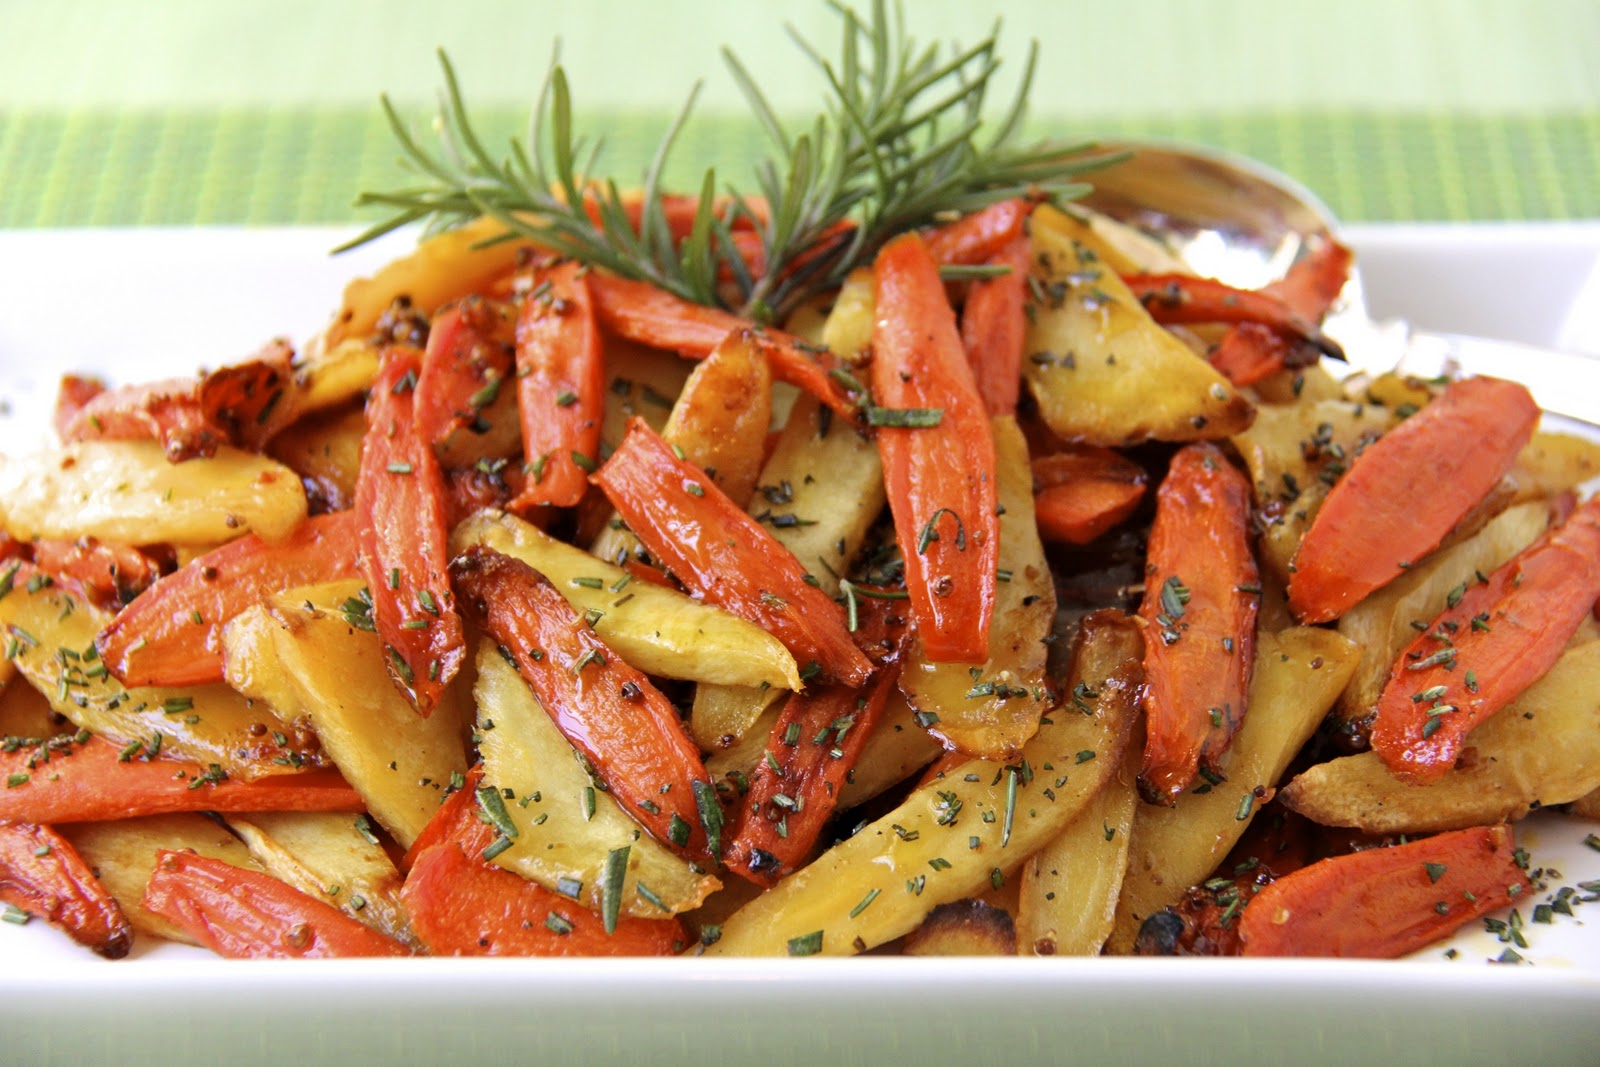 Simple Sticky Roasted Rosemary Root Veggies | The Café Sucre Farine